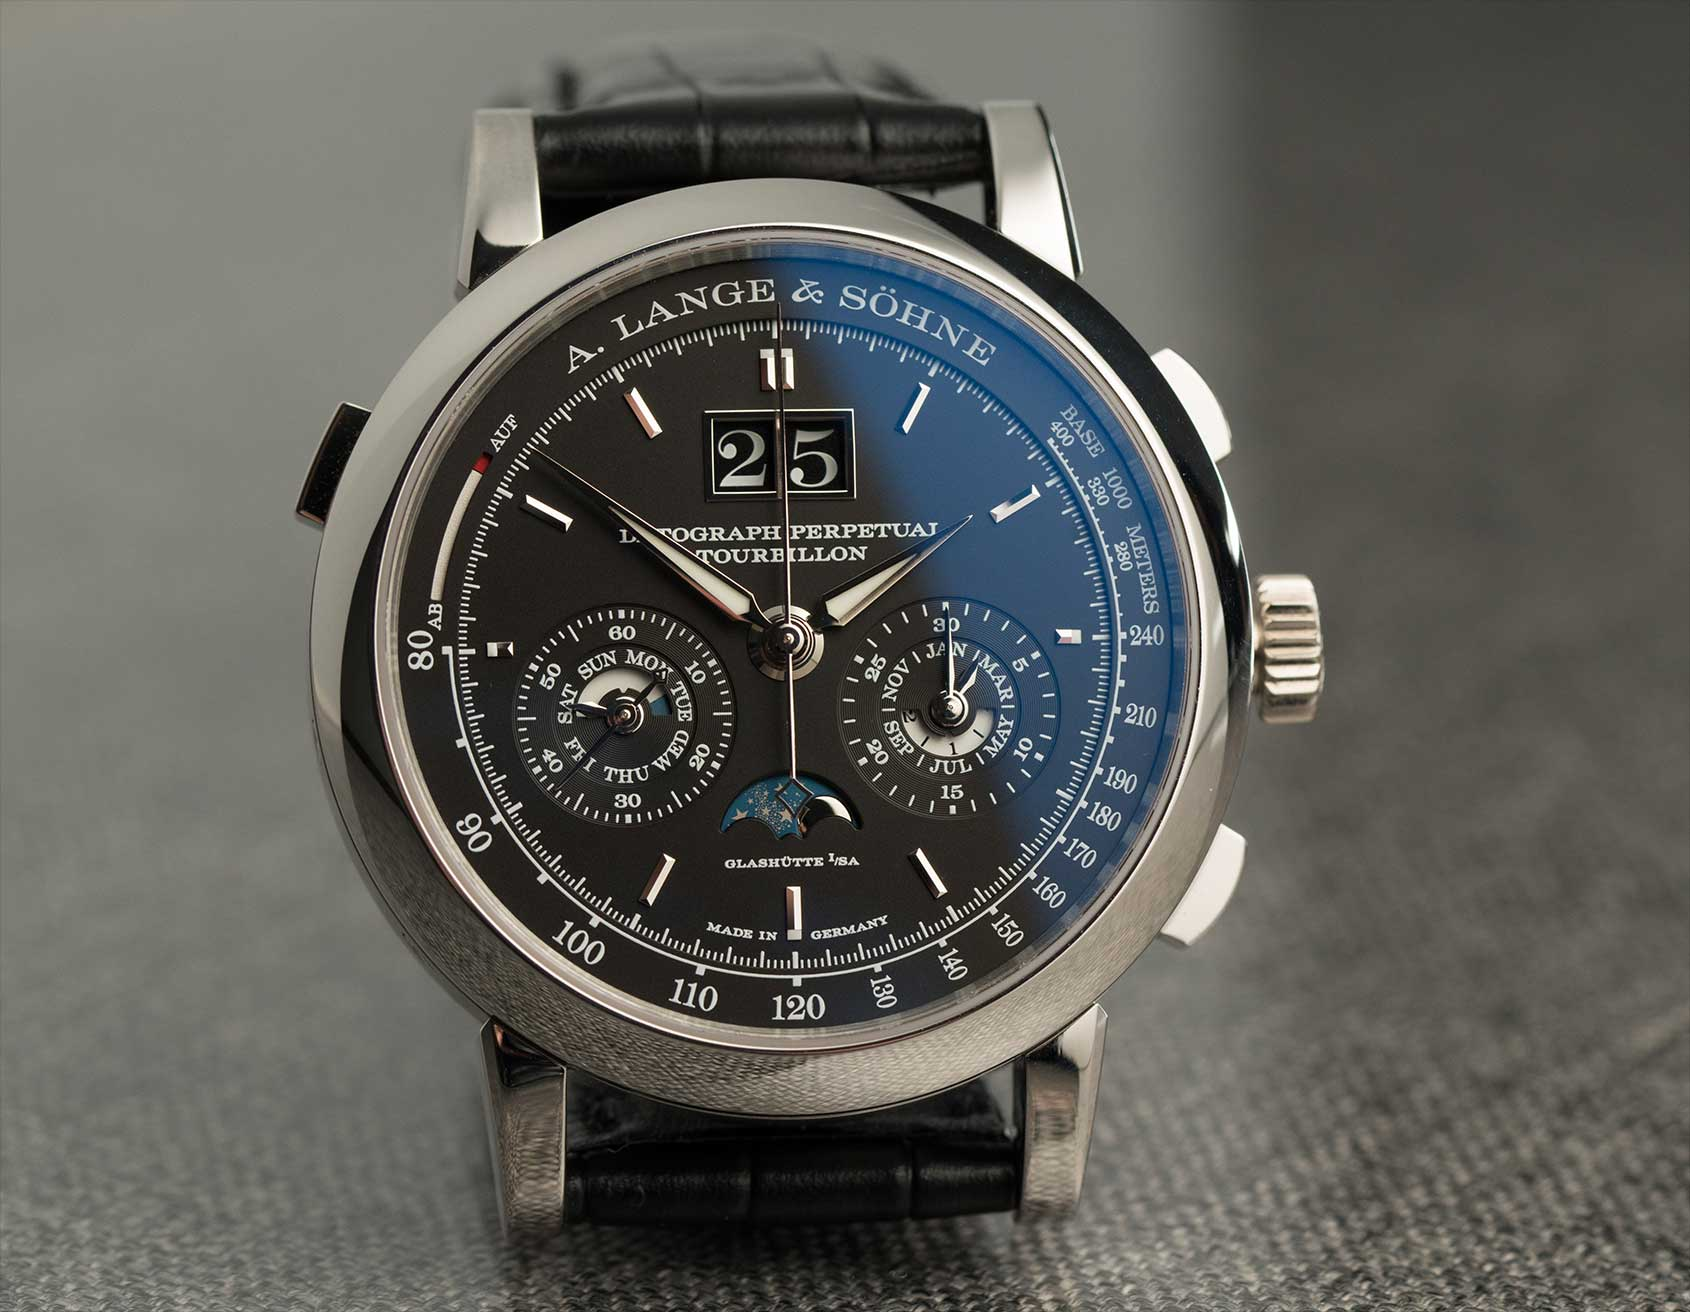 A lange s hne datograph perpetual tourbillon hands on review for Calendar watches